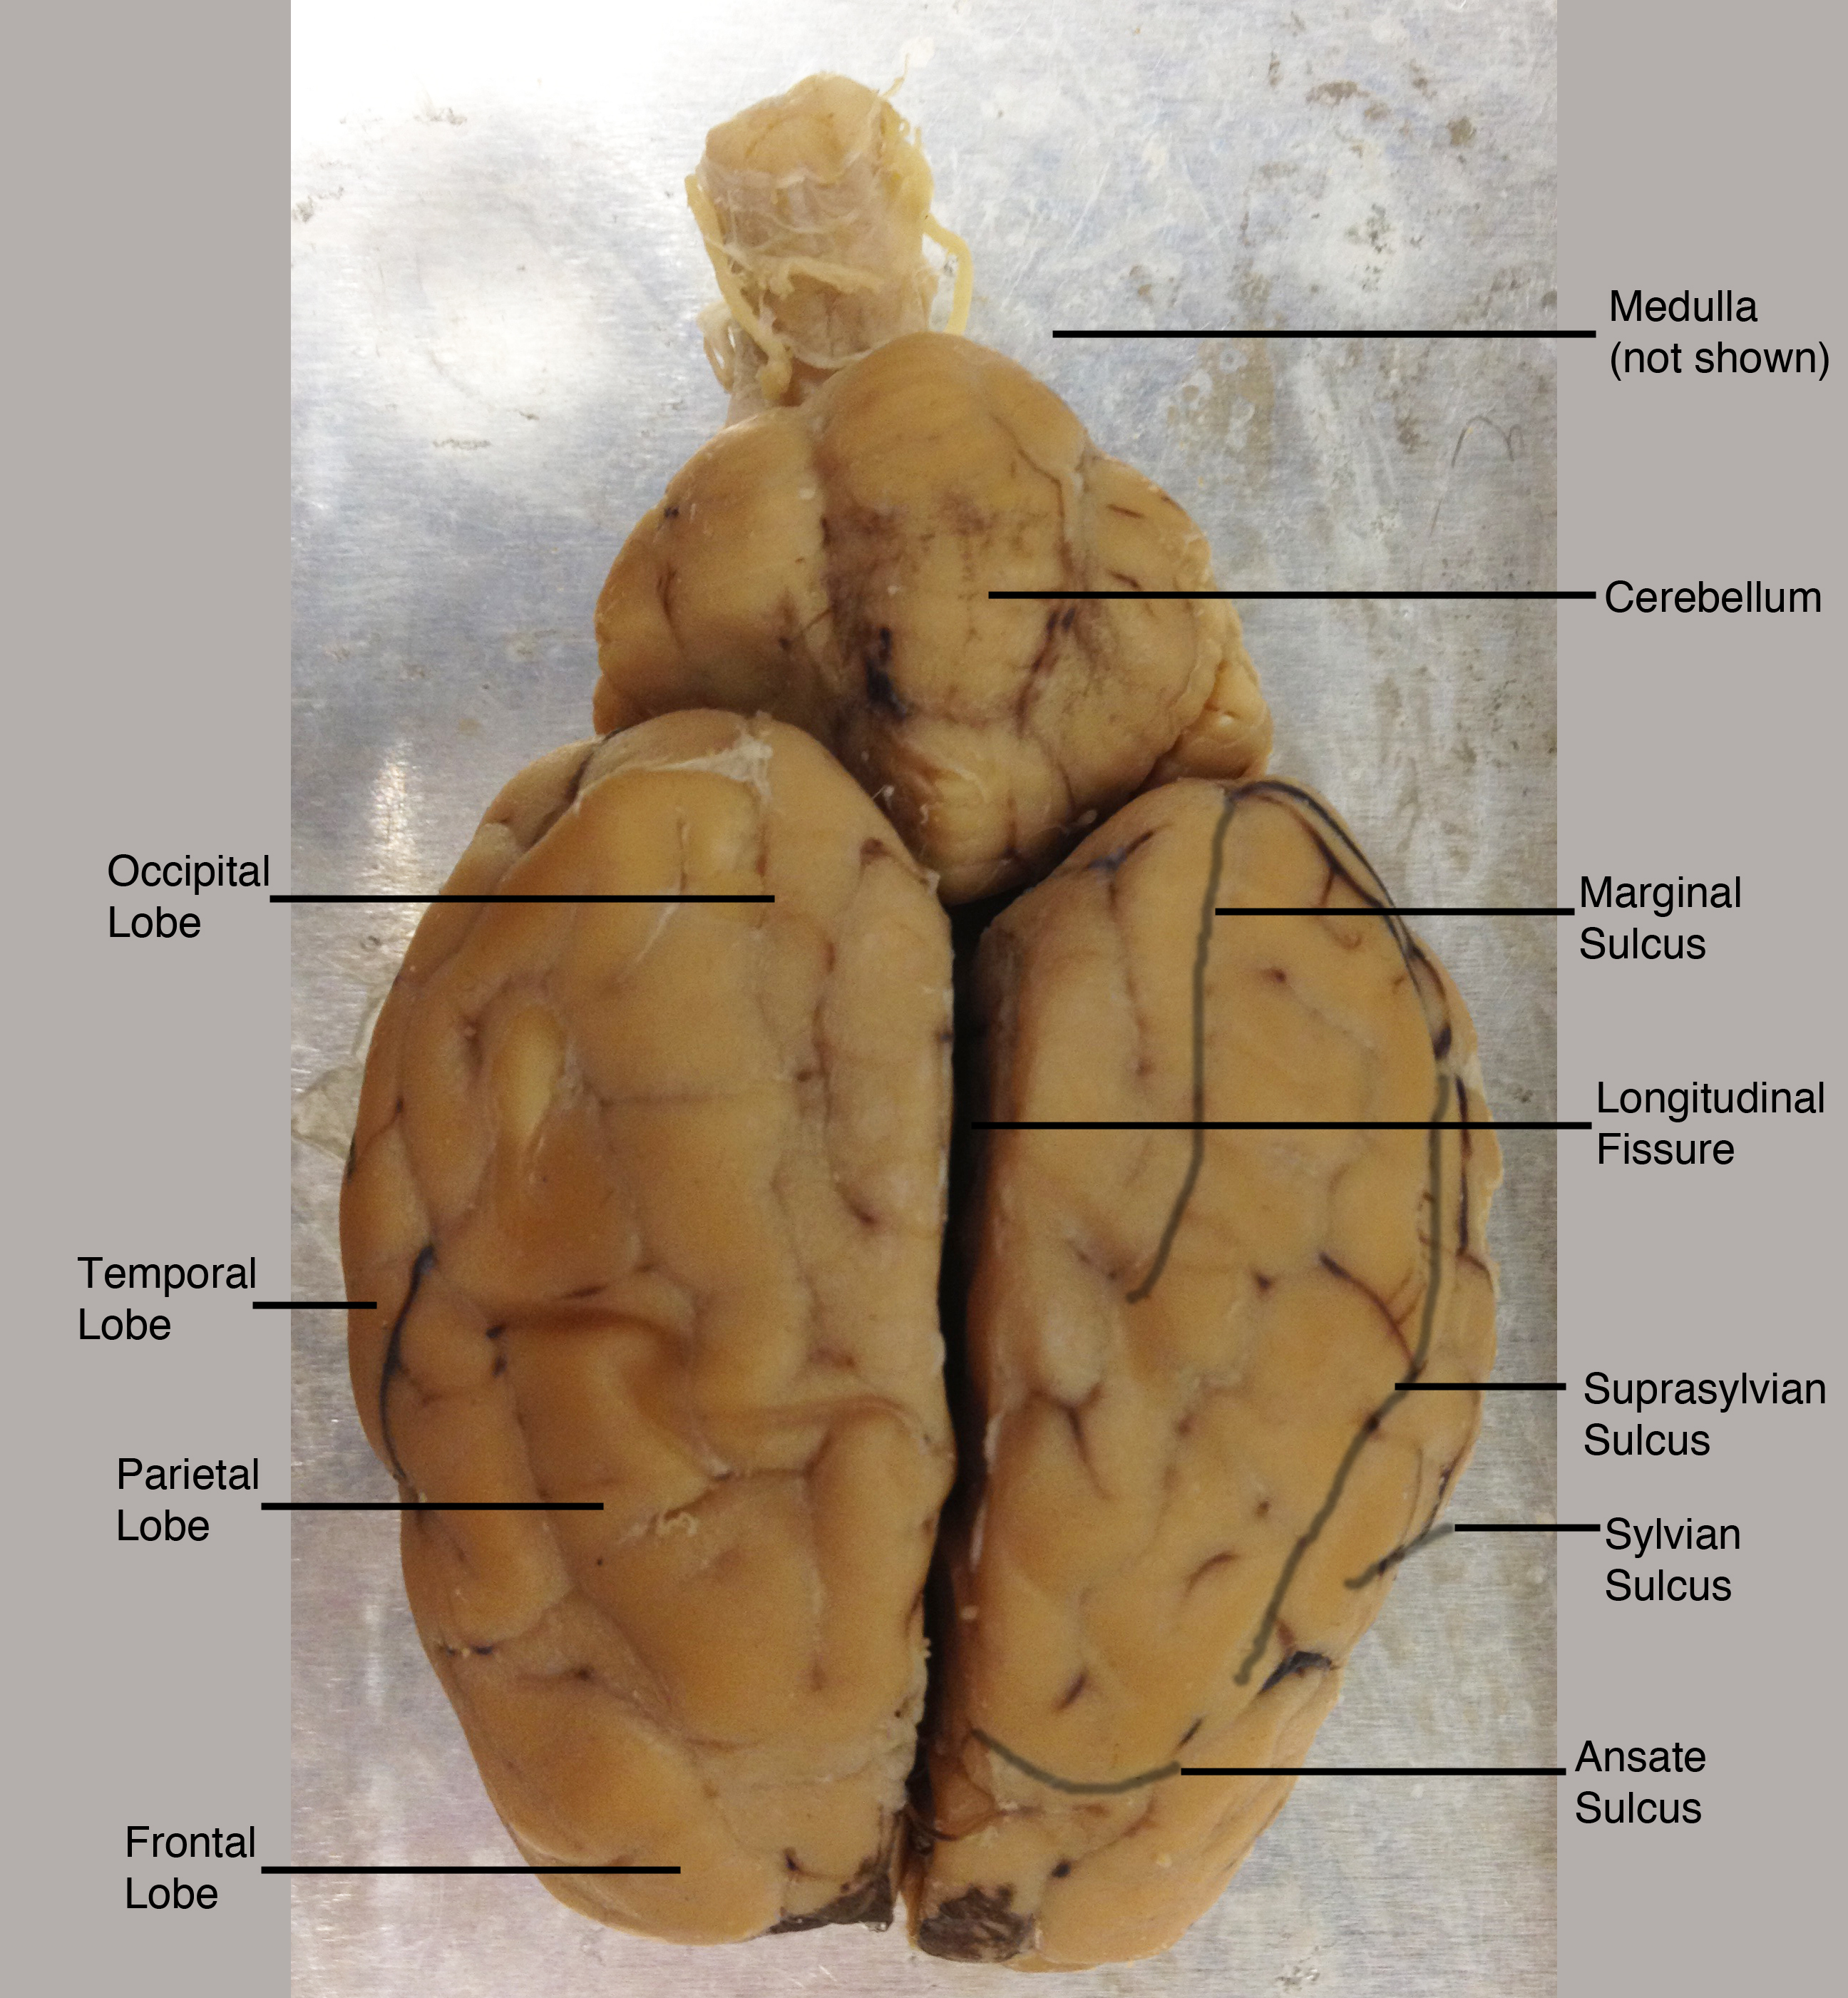 Sheep Brain Anatomy Ventral